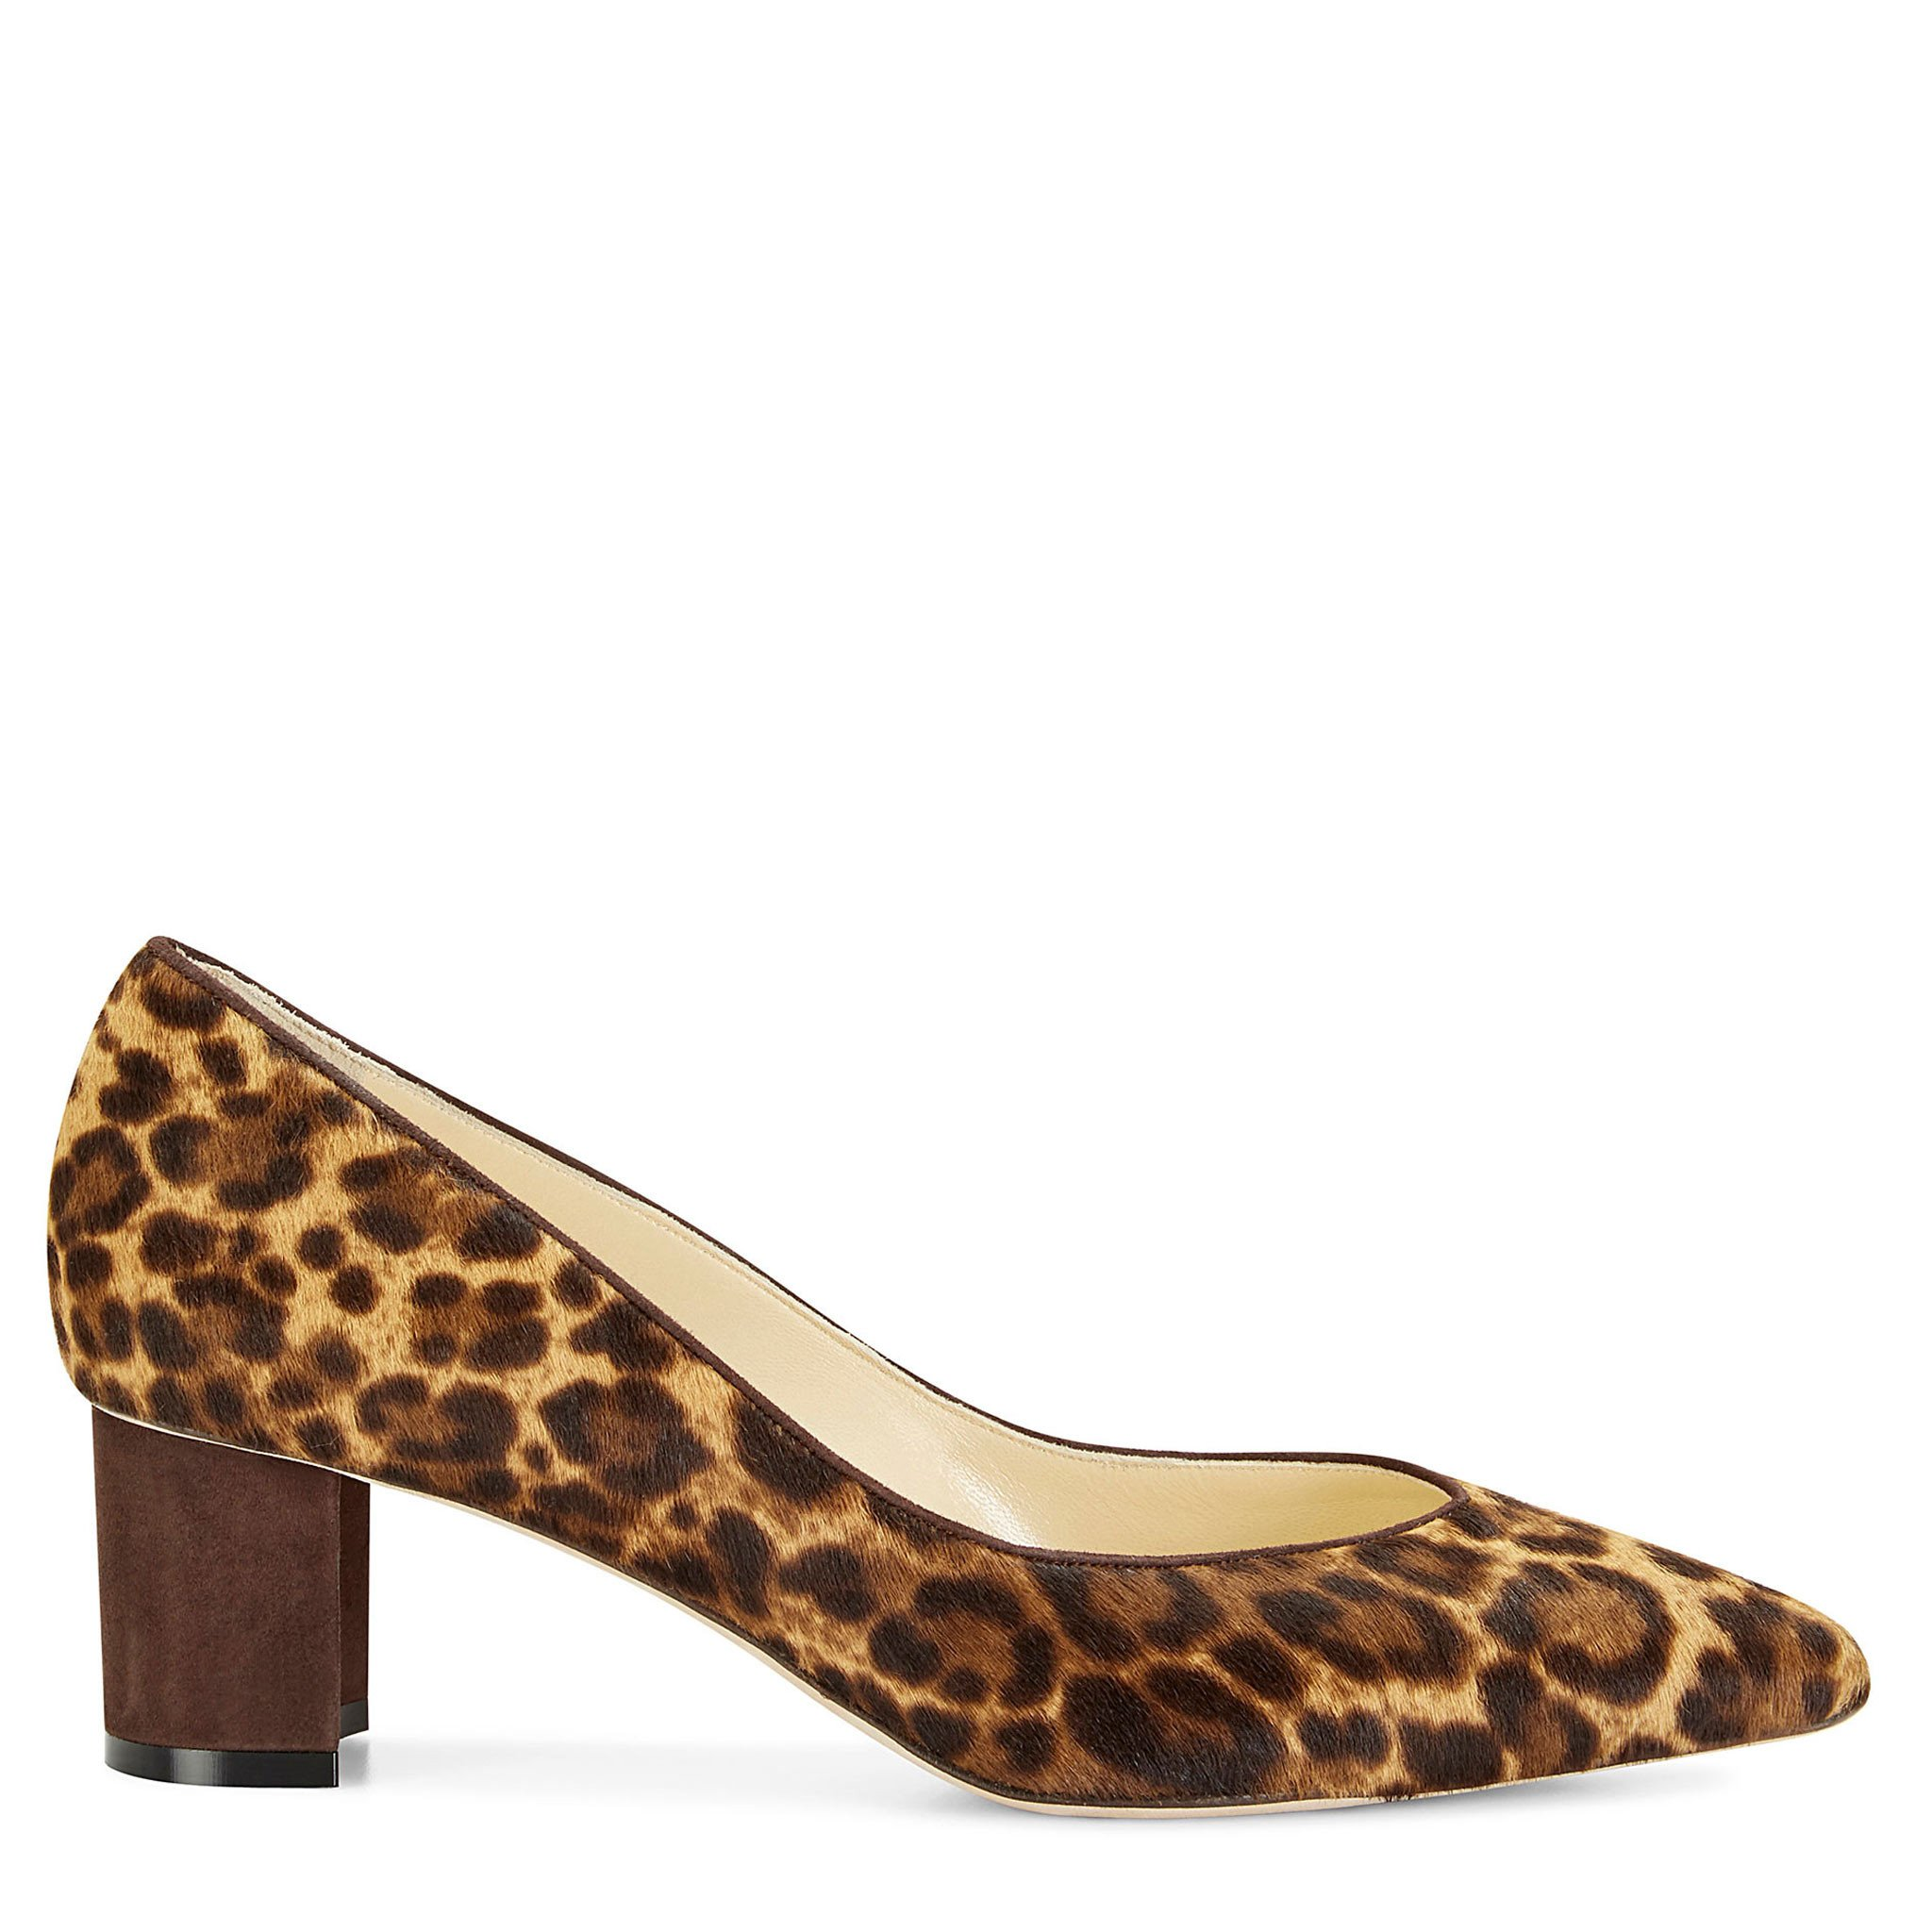 6abe54e3bf60 Sarah Flint Specialty Emma Shoes. Meghan fell in love with these chocolate  leopard heels ...